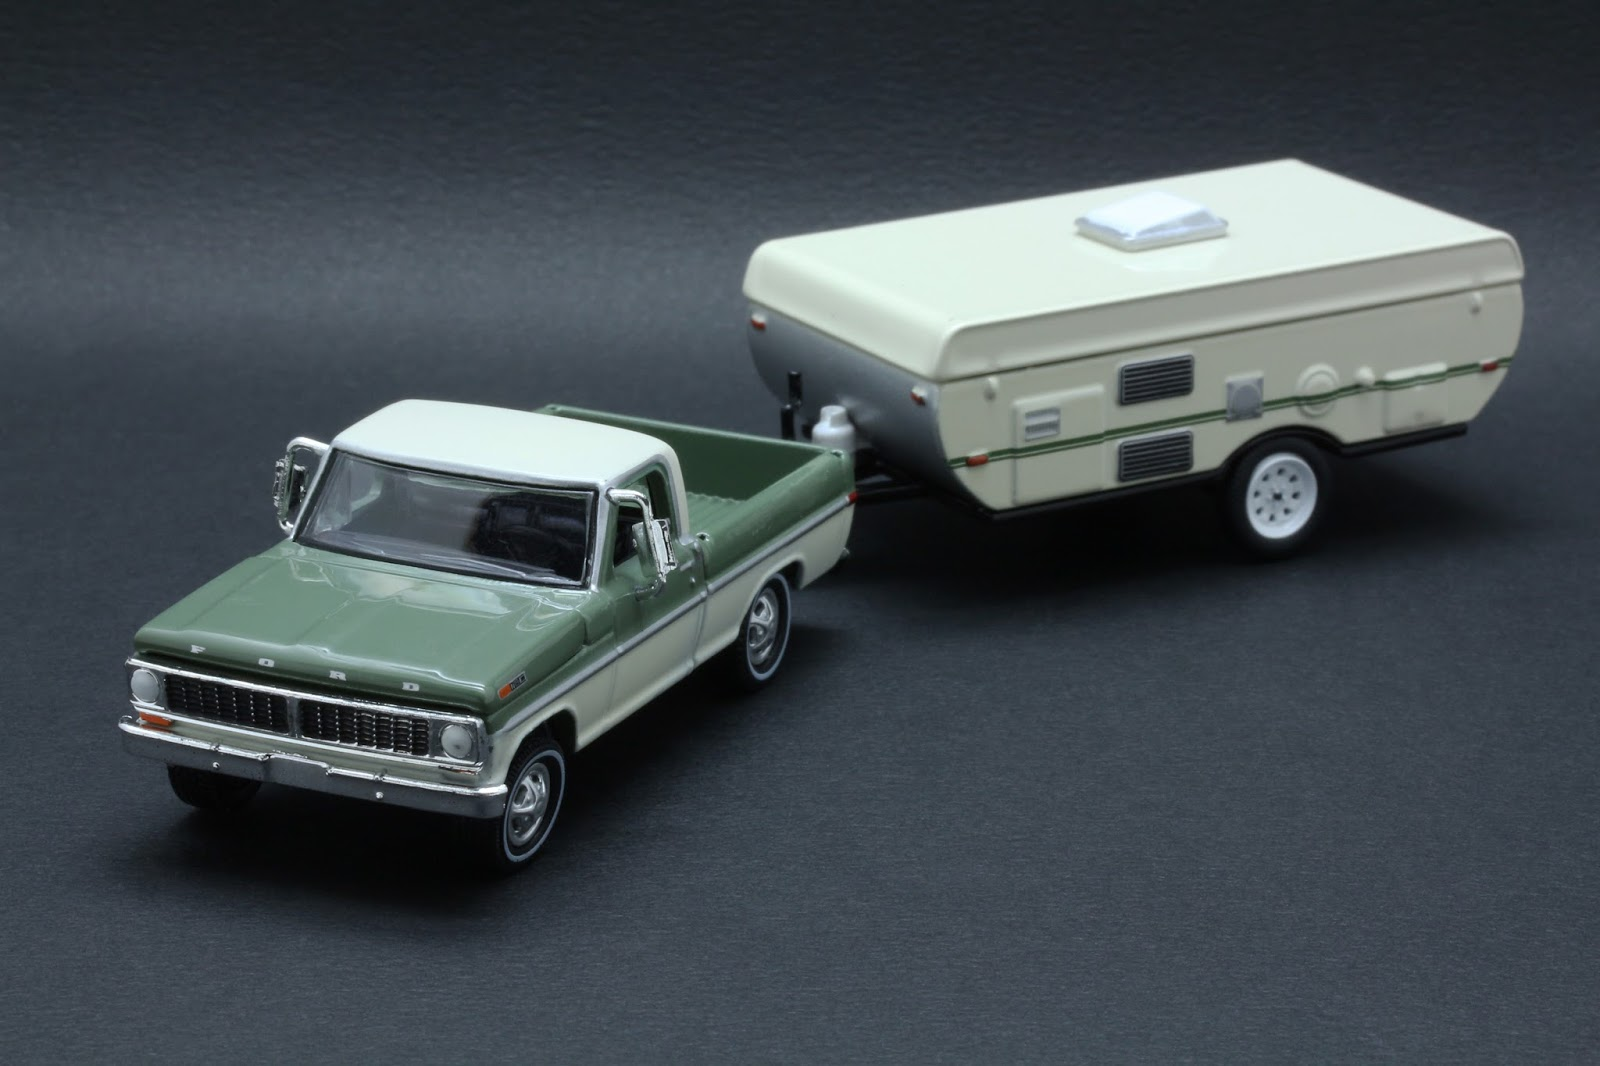 Diecast Hobbist: 1970 Ford F-100 and Pop-Up Camper Trailer